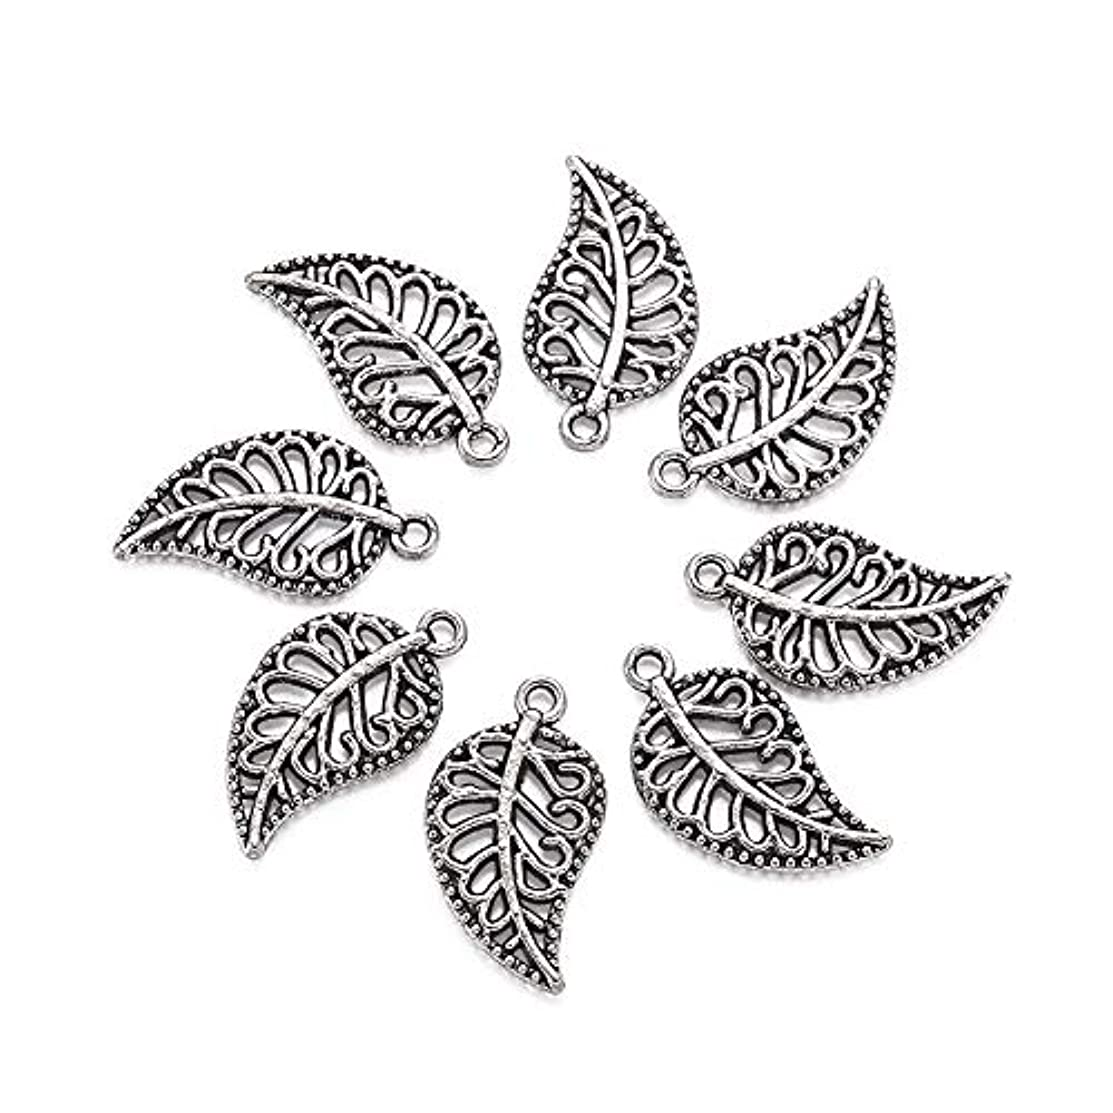 Craftdady 20Pcs Antique Silver Filigree Leaf Alloy Charms 18x10mm DIY Jewelry Necklace Earring Bracelet Craft Making Tibetan Style Pendants